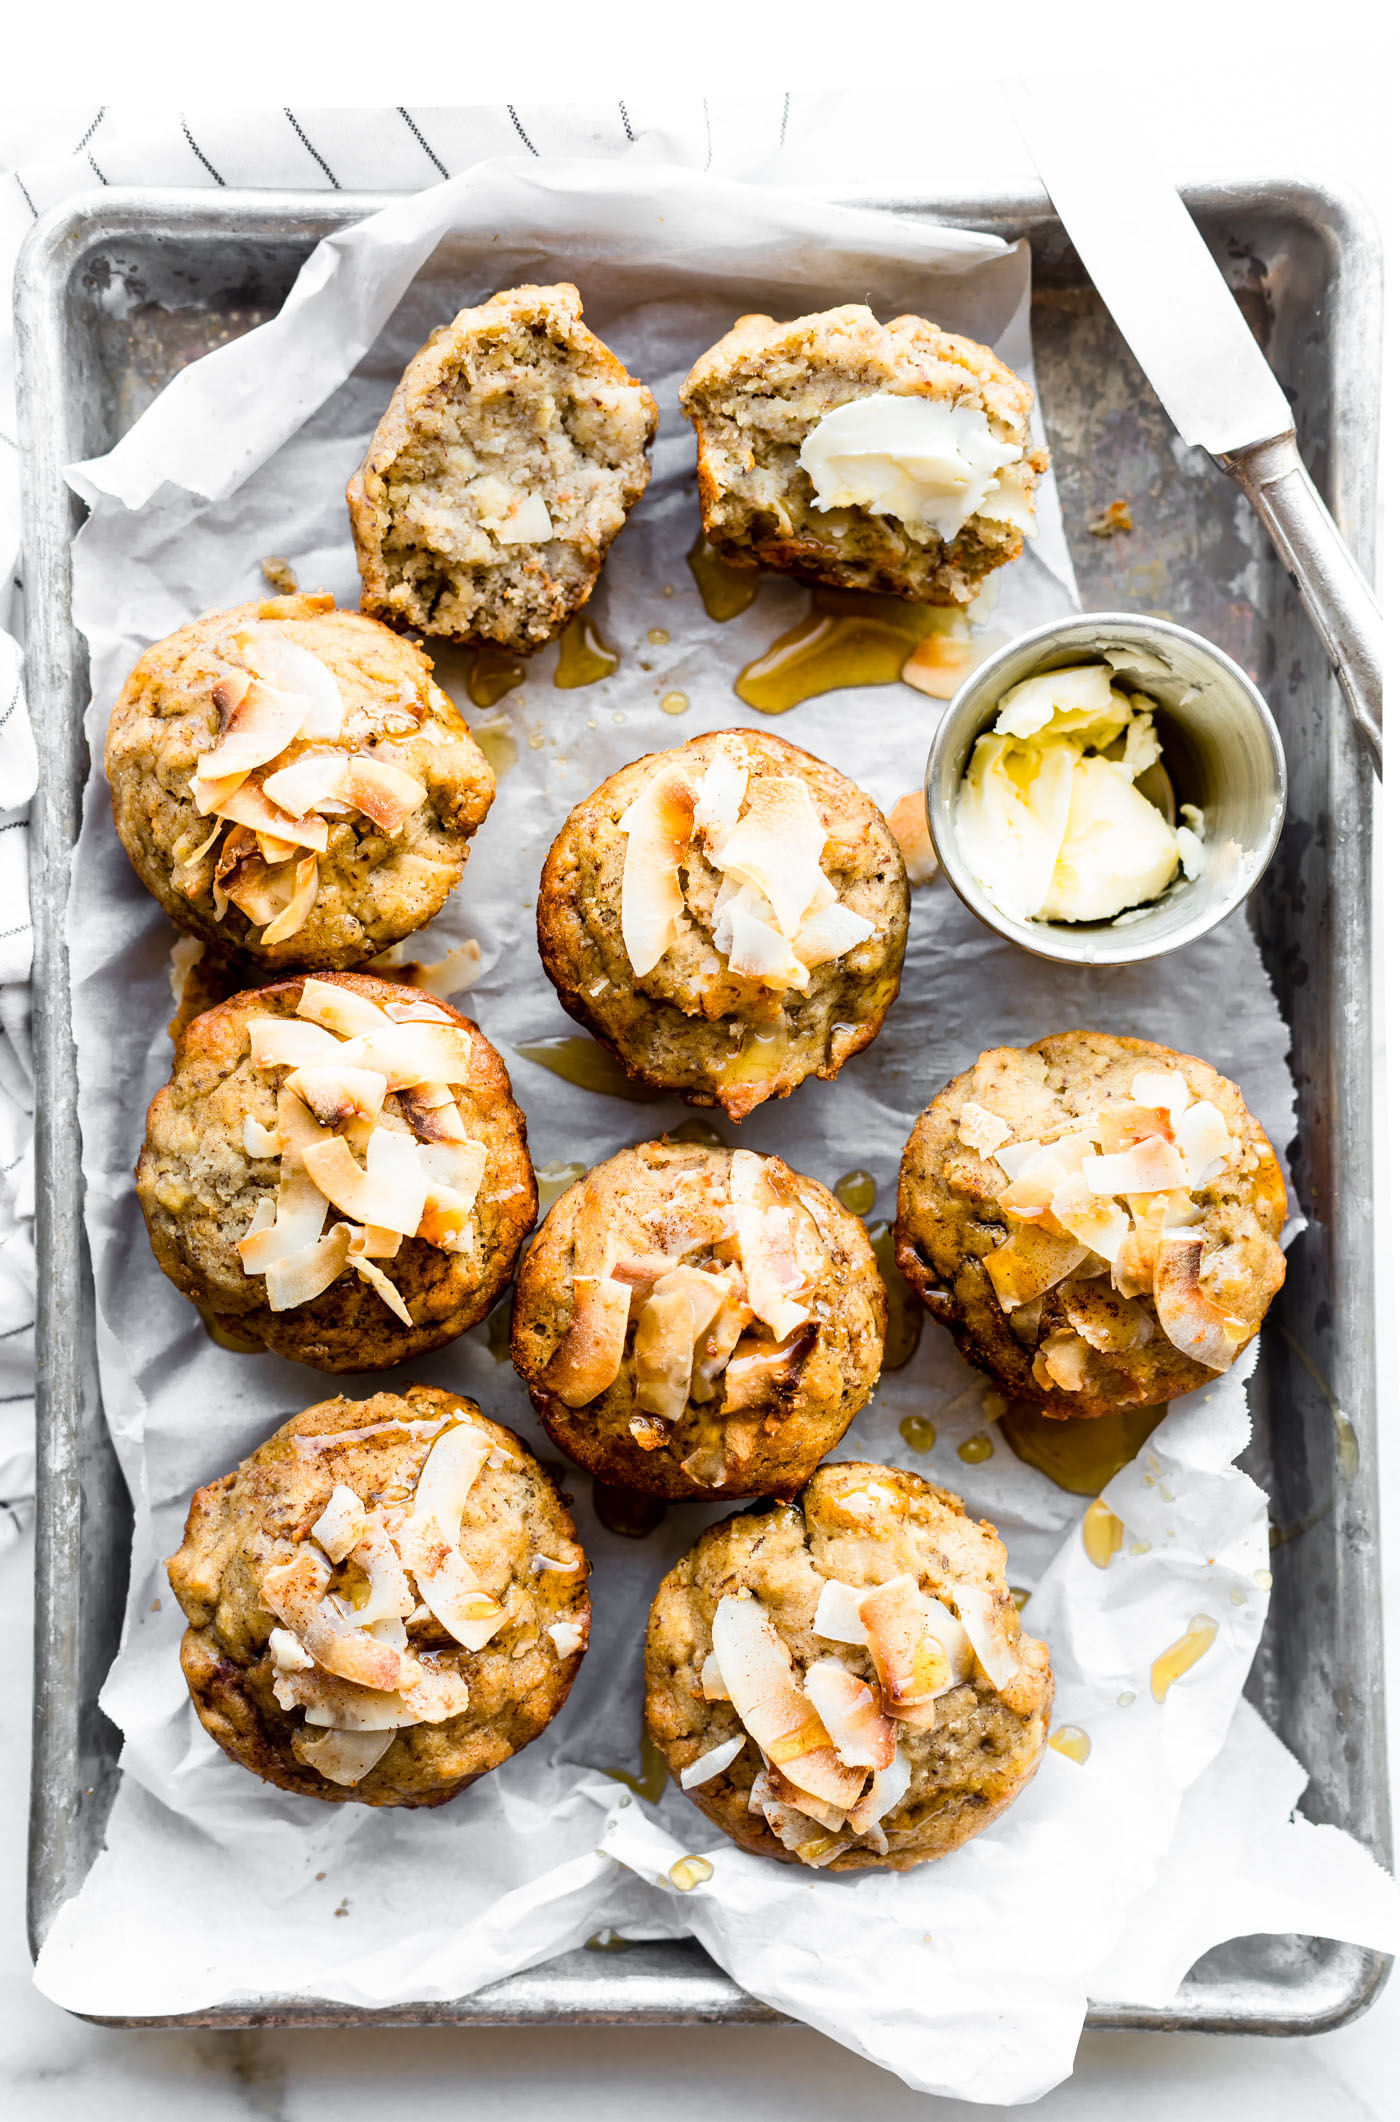 Lightly Sweetened Paleo Banana Bread Muffins with Toasted Coconut. These Banana Muffins are quick to make and delicious! Refinedsugar free, soft, fluffy, and addicting.